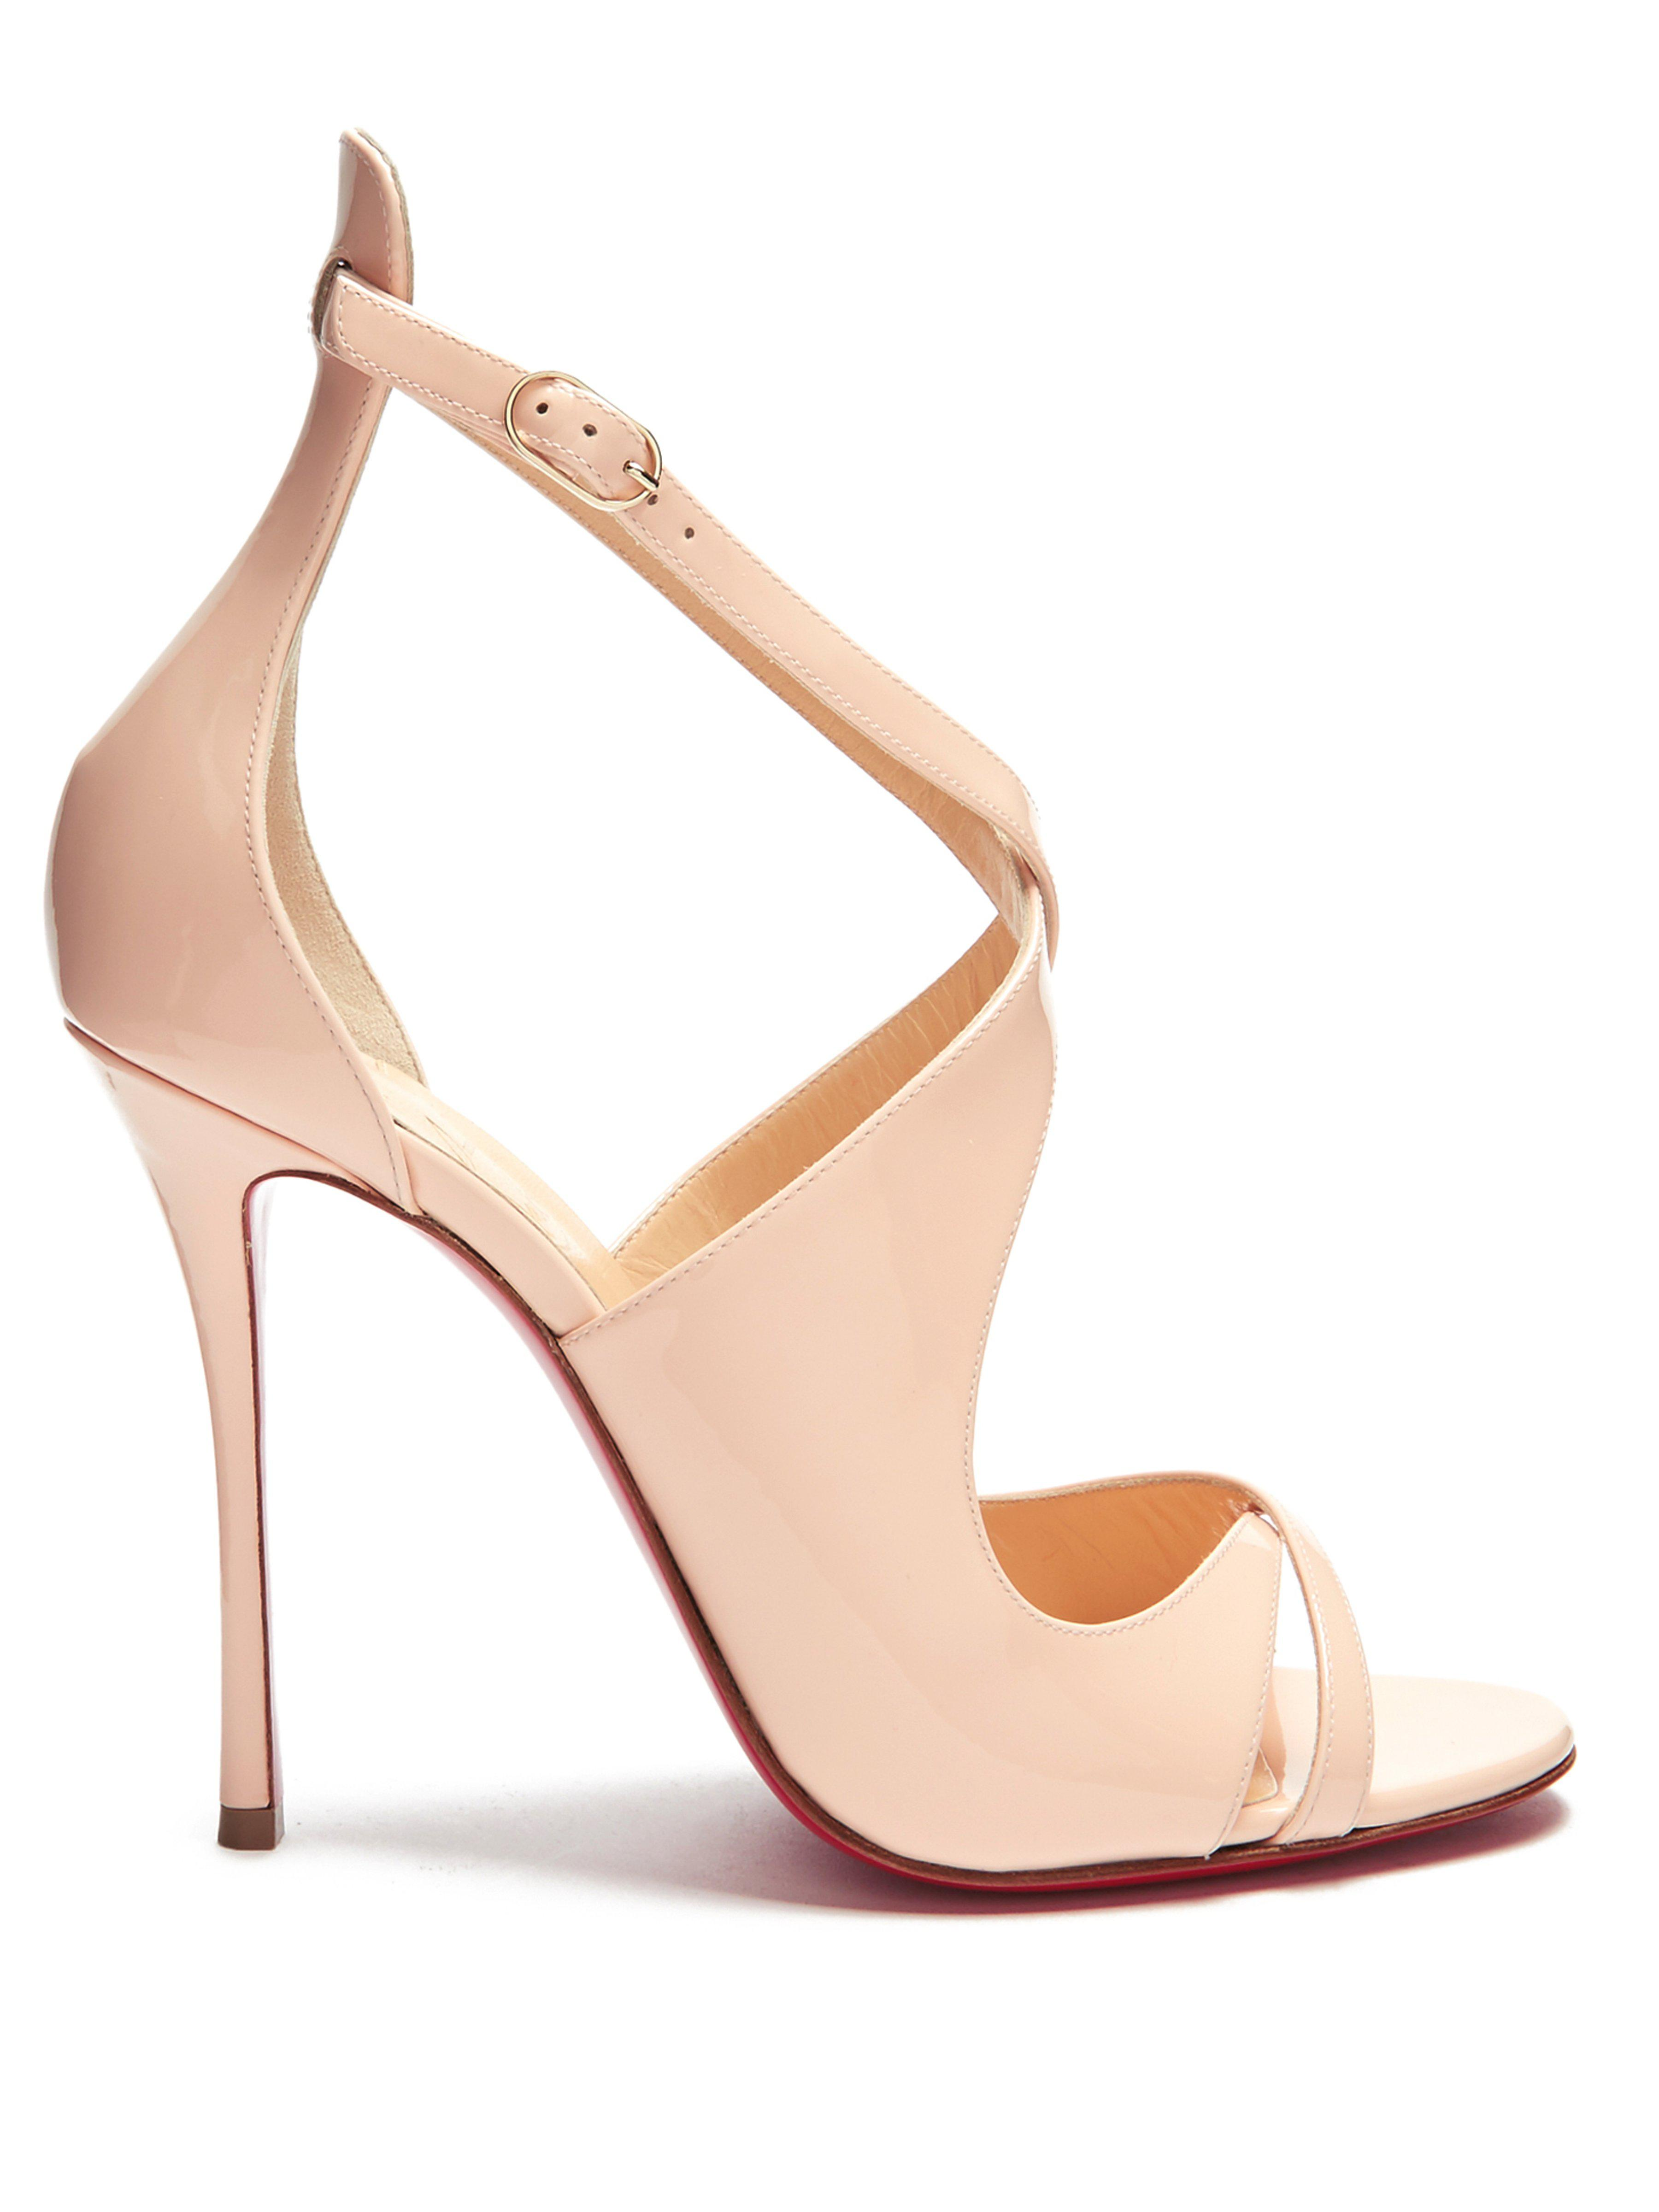 7d29f3b8d44 Christian Louboutin Malefissima Patent Leather Pumps in Pink - Lyst